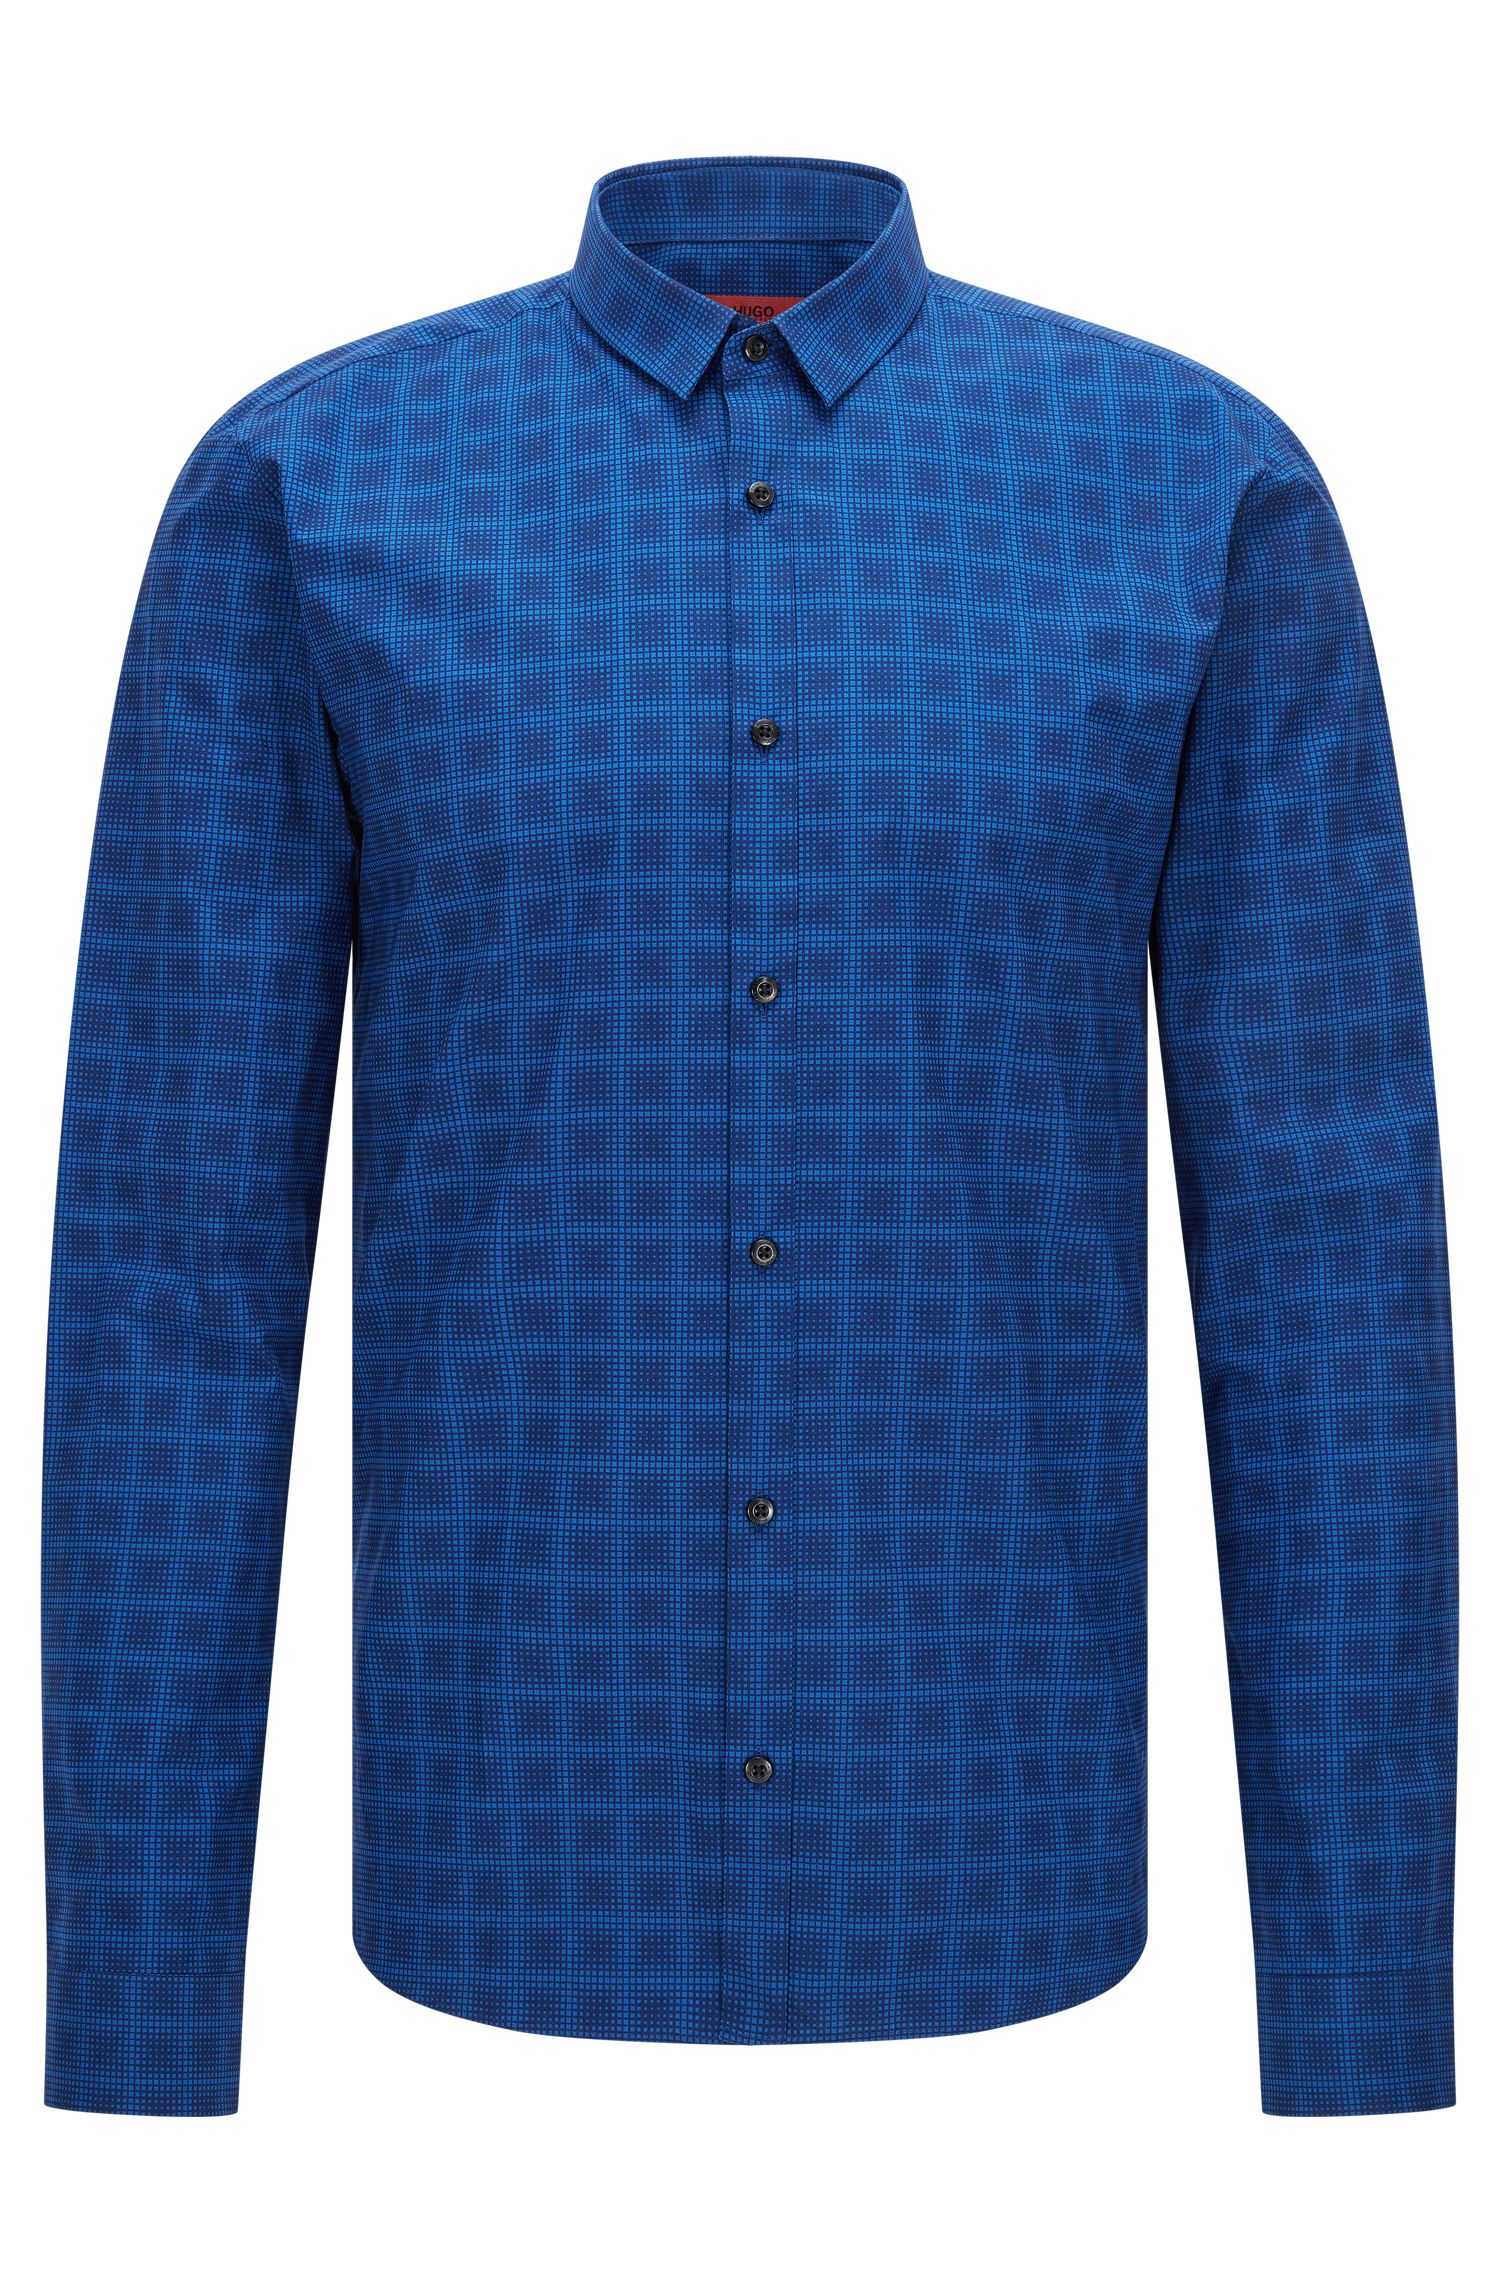 'Ero' | Extra-Slim Fit, Check Cotton Button Down Shirt